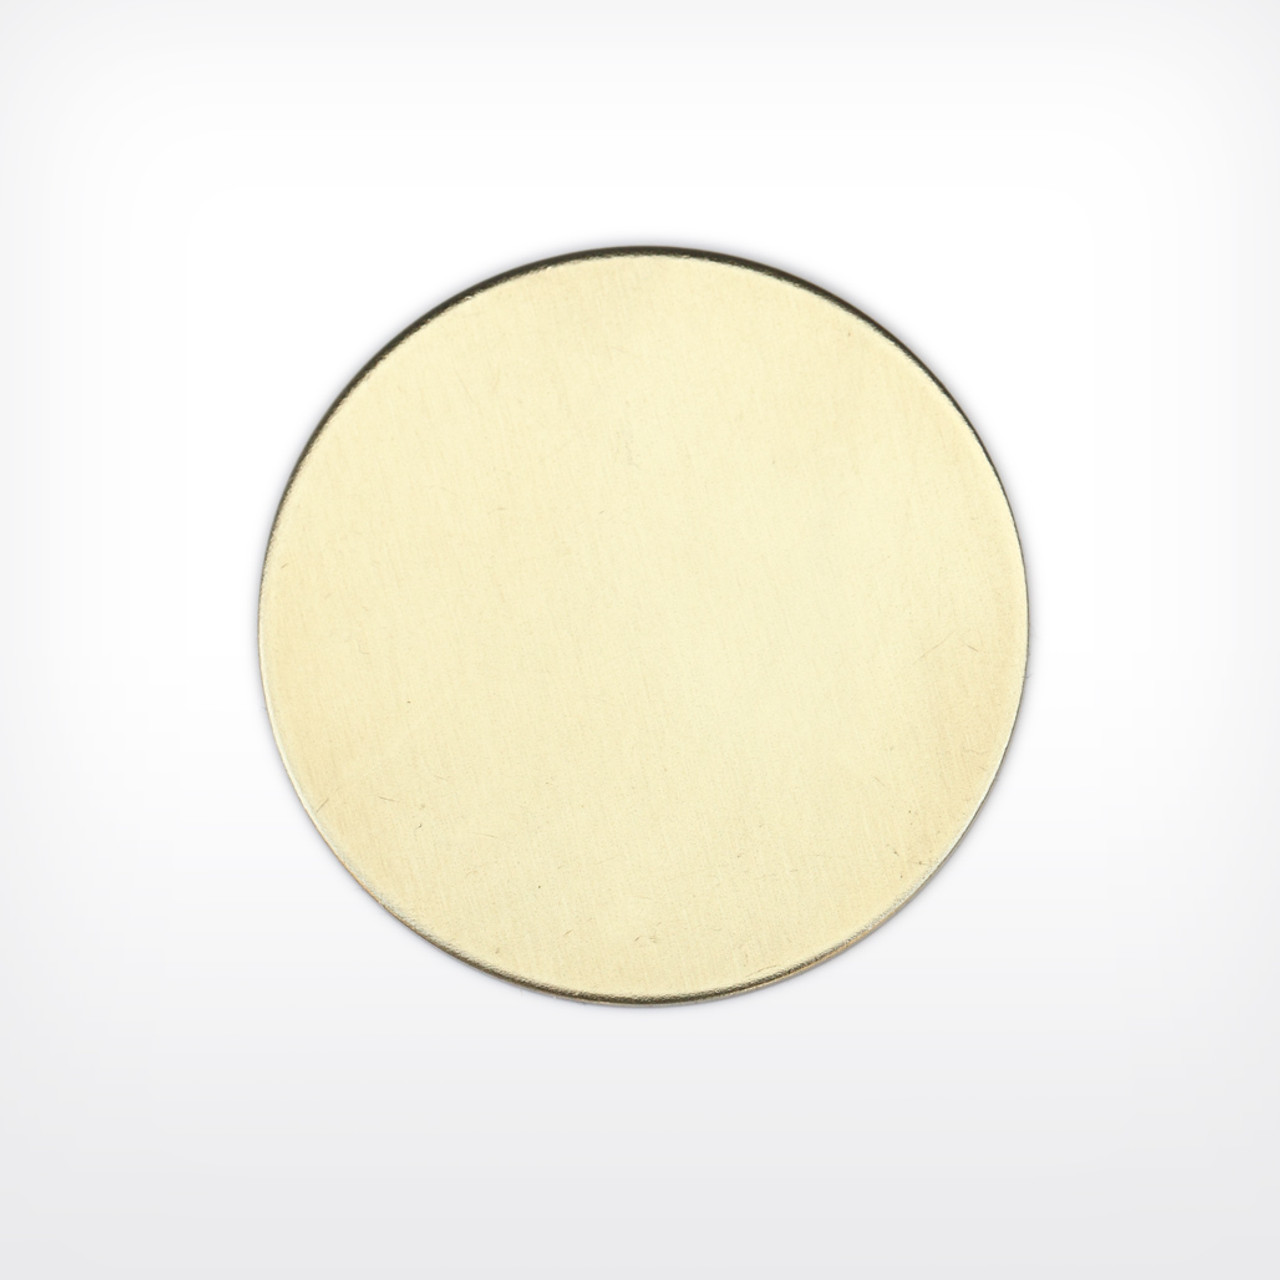 Brass Disc, 44.5mm  (1 3/4 inch)- Pack of 10 (657-BR)